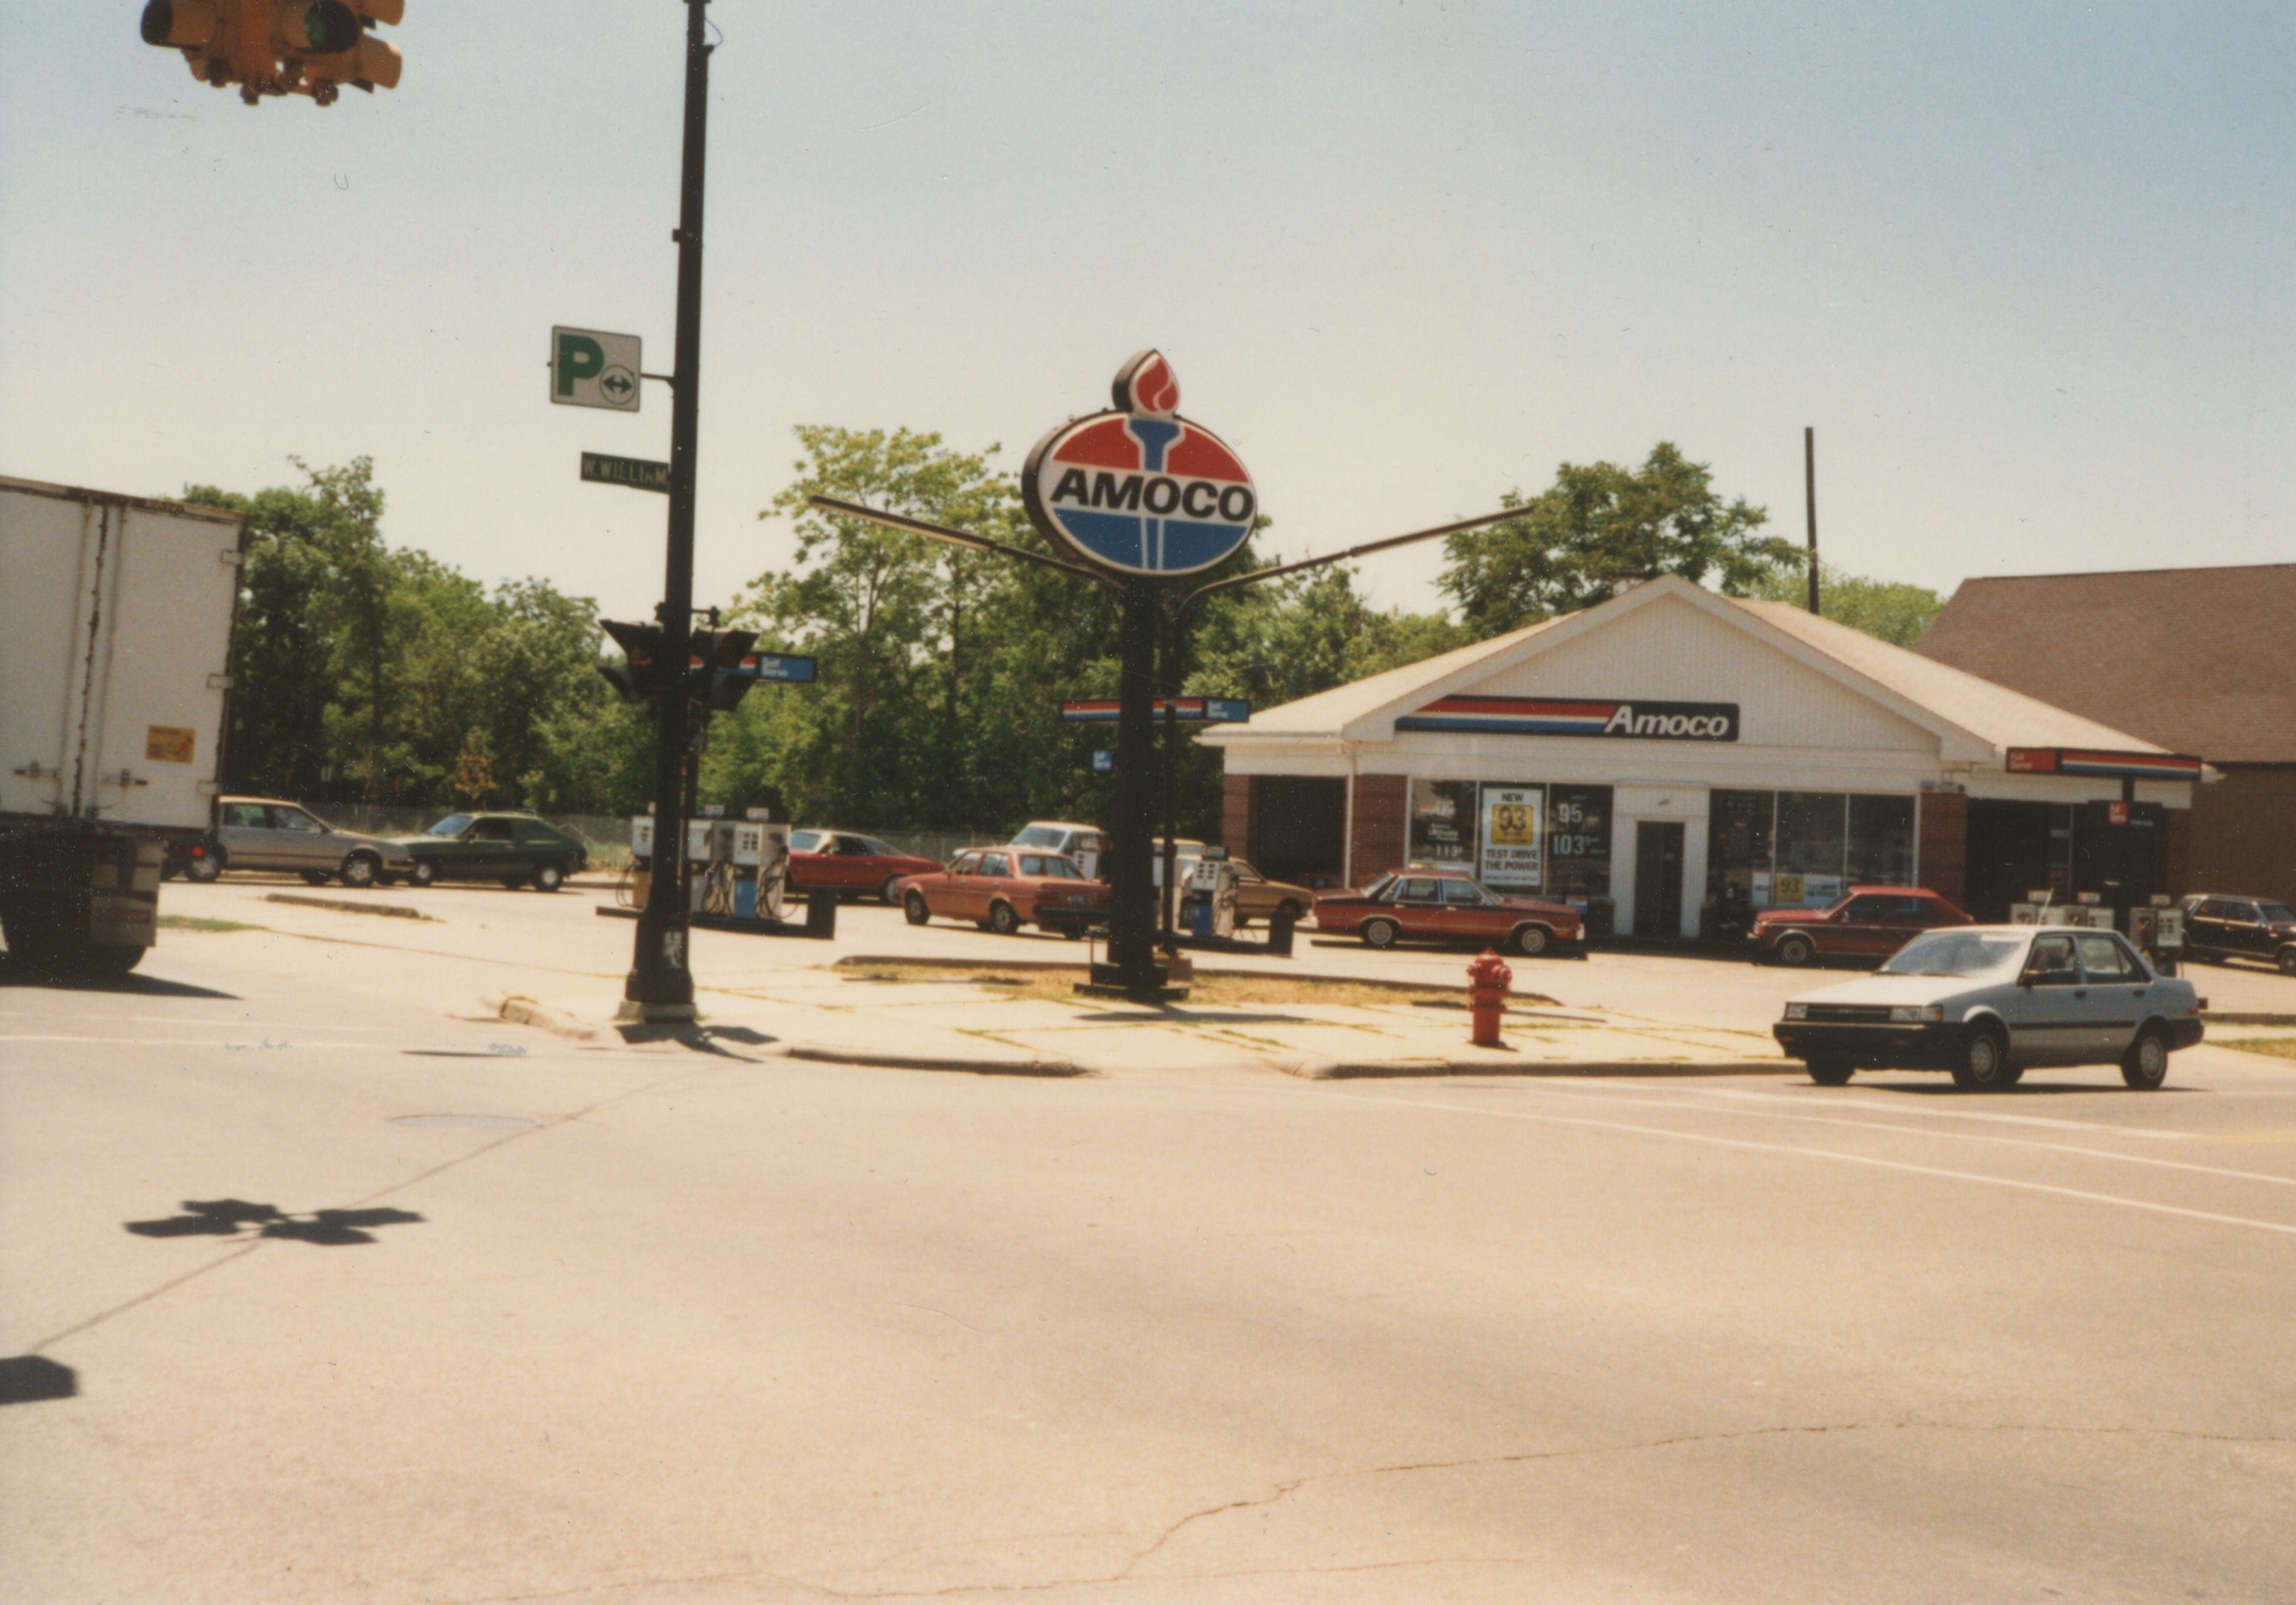 Amoco Station (year unknown) image